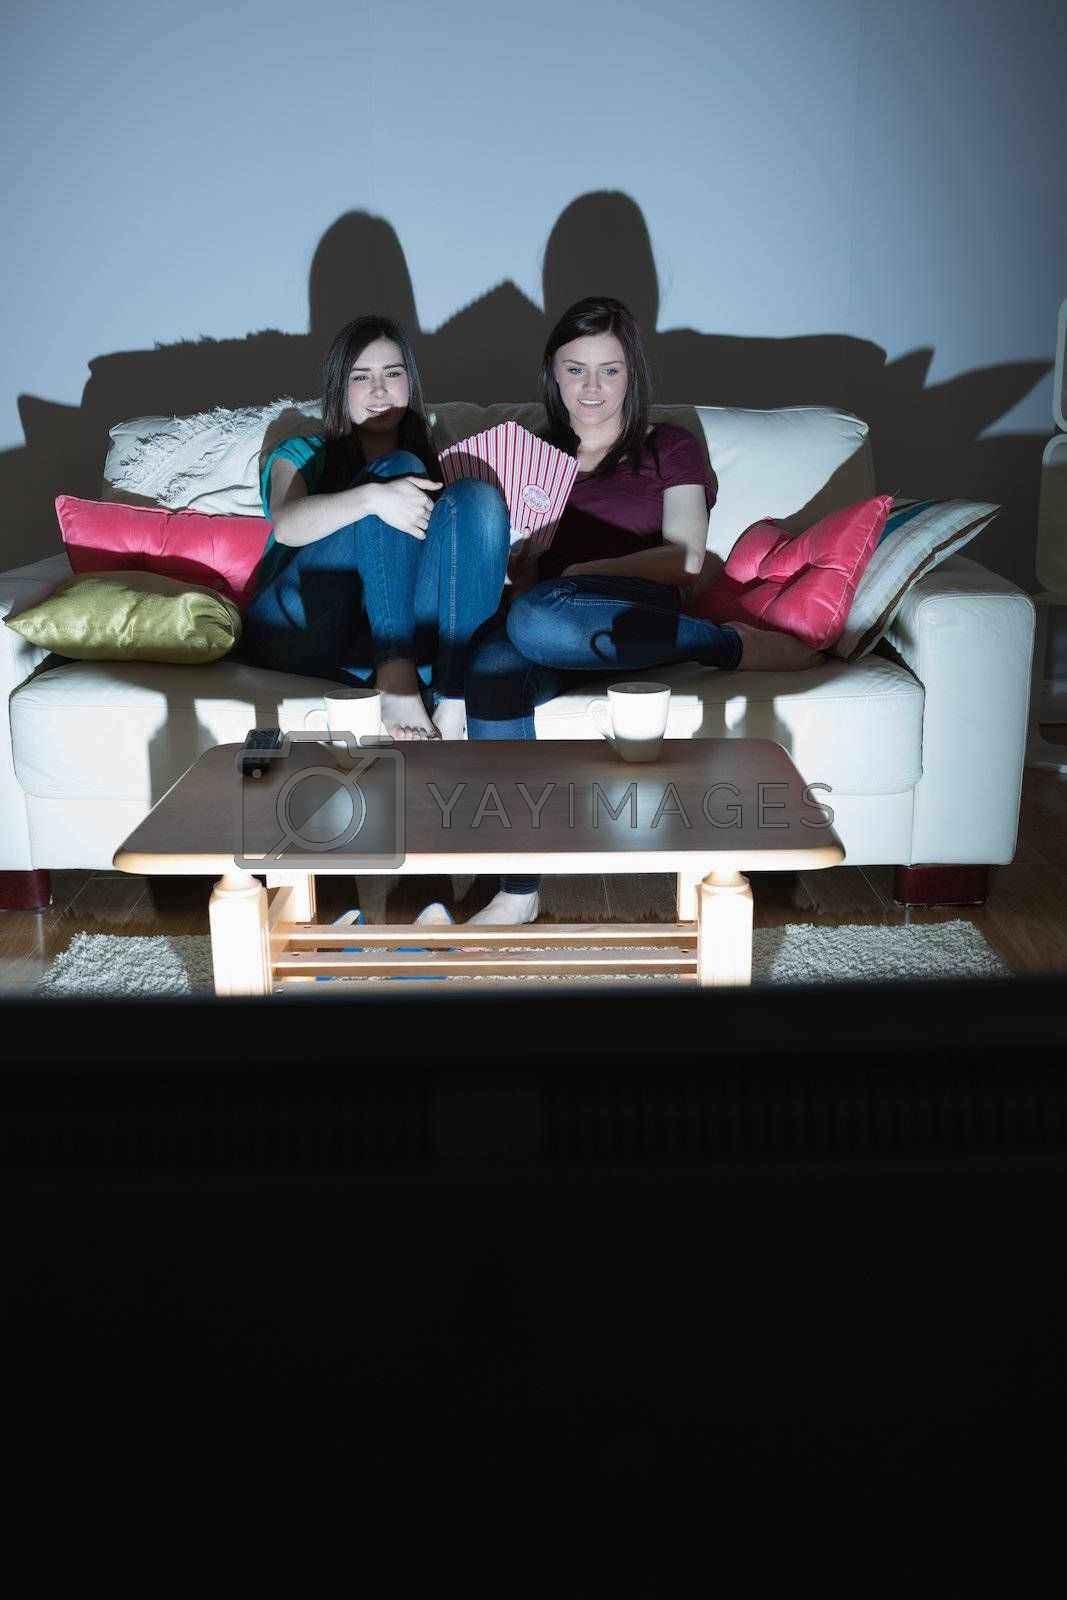 Two happy friends on the couch watching tv together in the dark by Wavebreakmedia